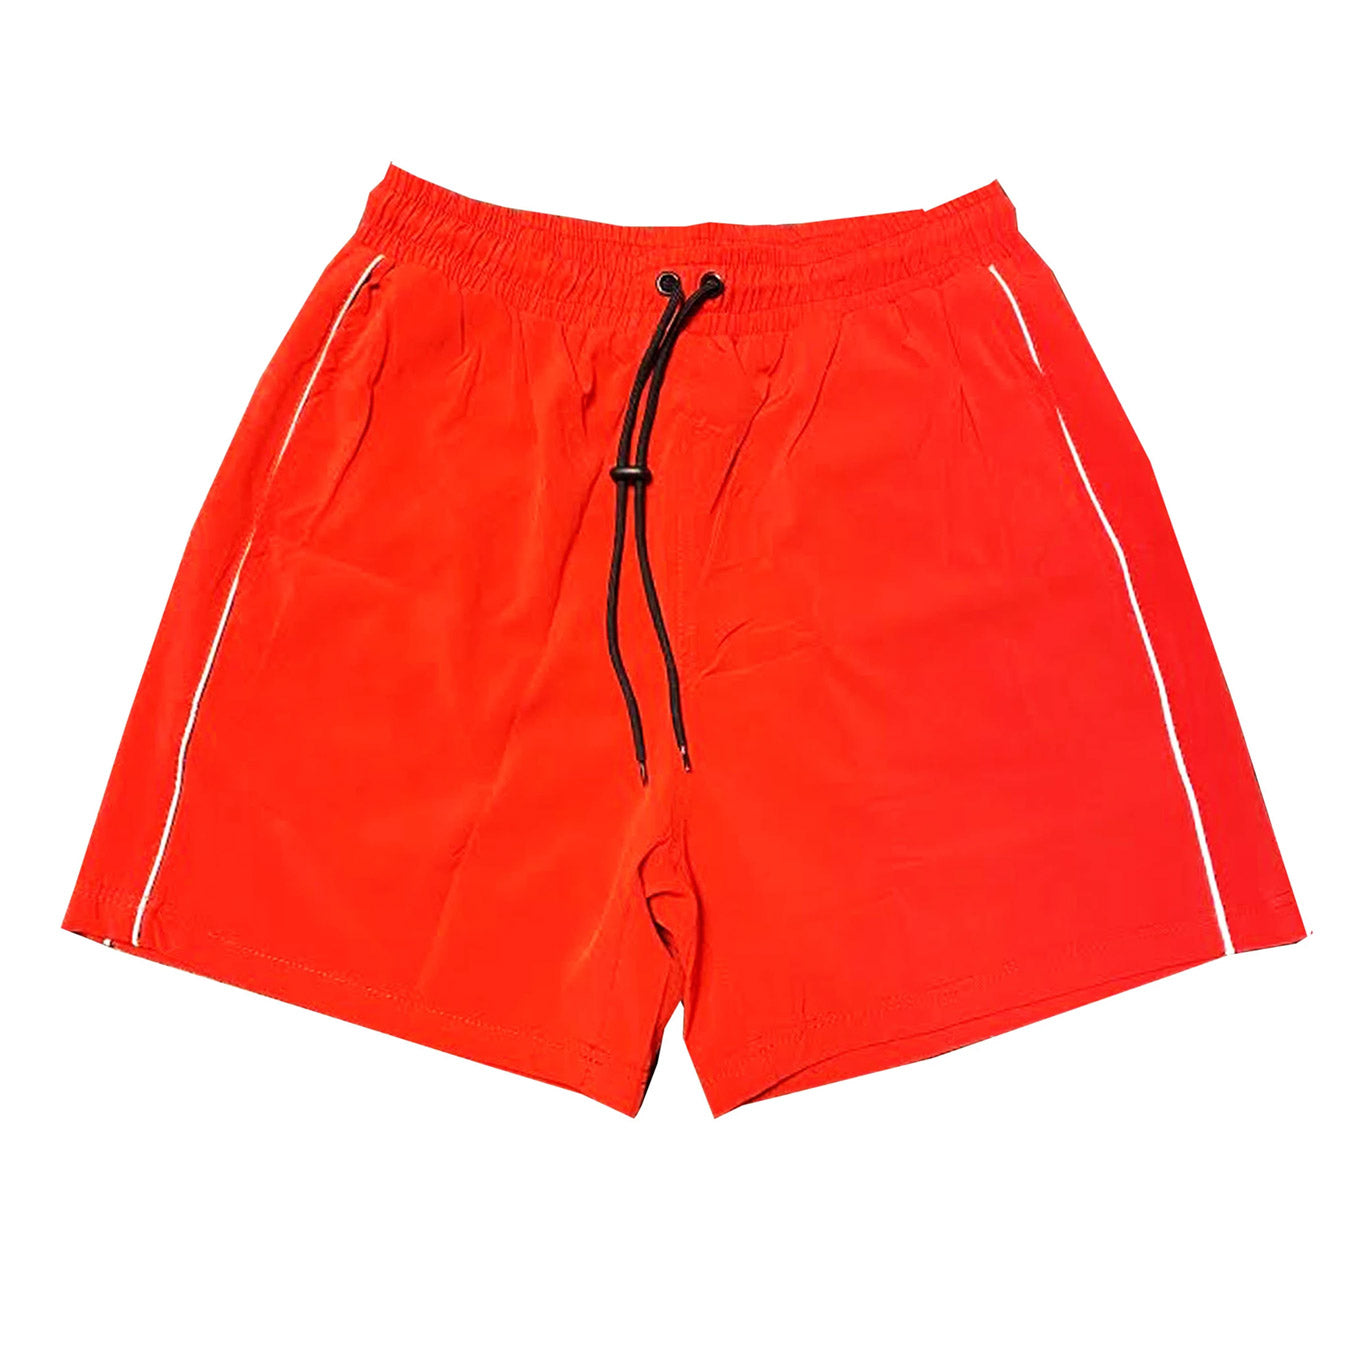 "ByKiy 3M Stretchbreaker Short ""Red"""